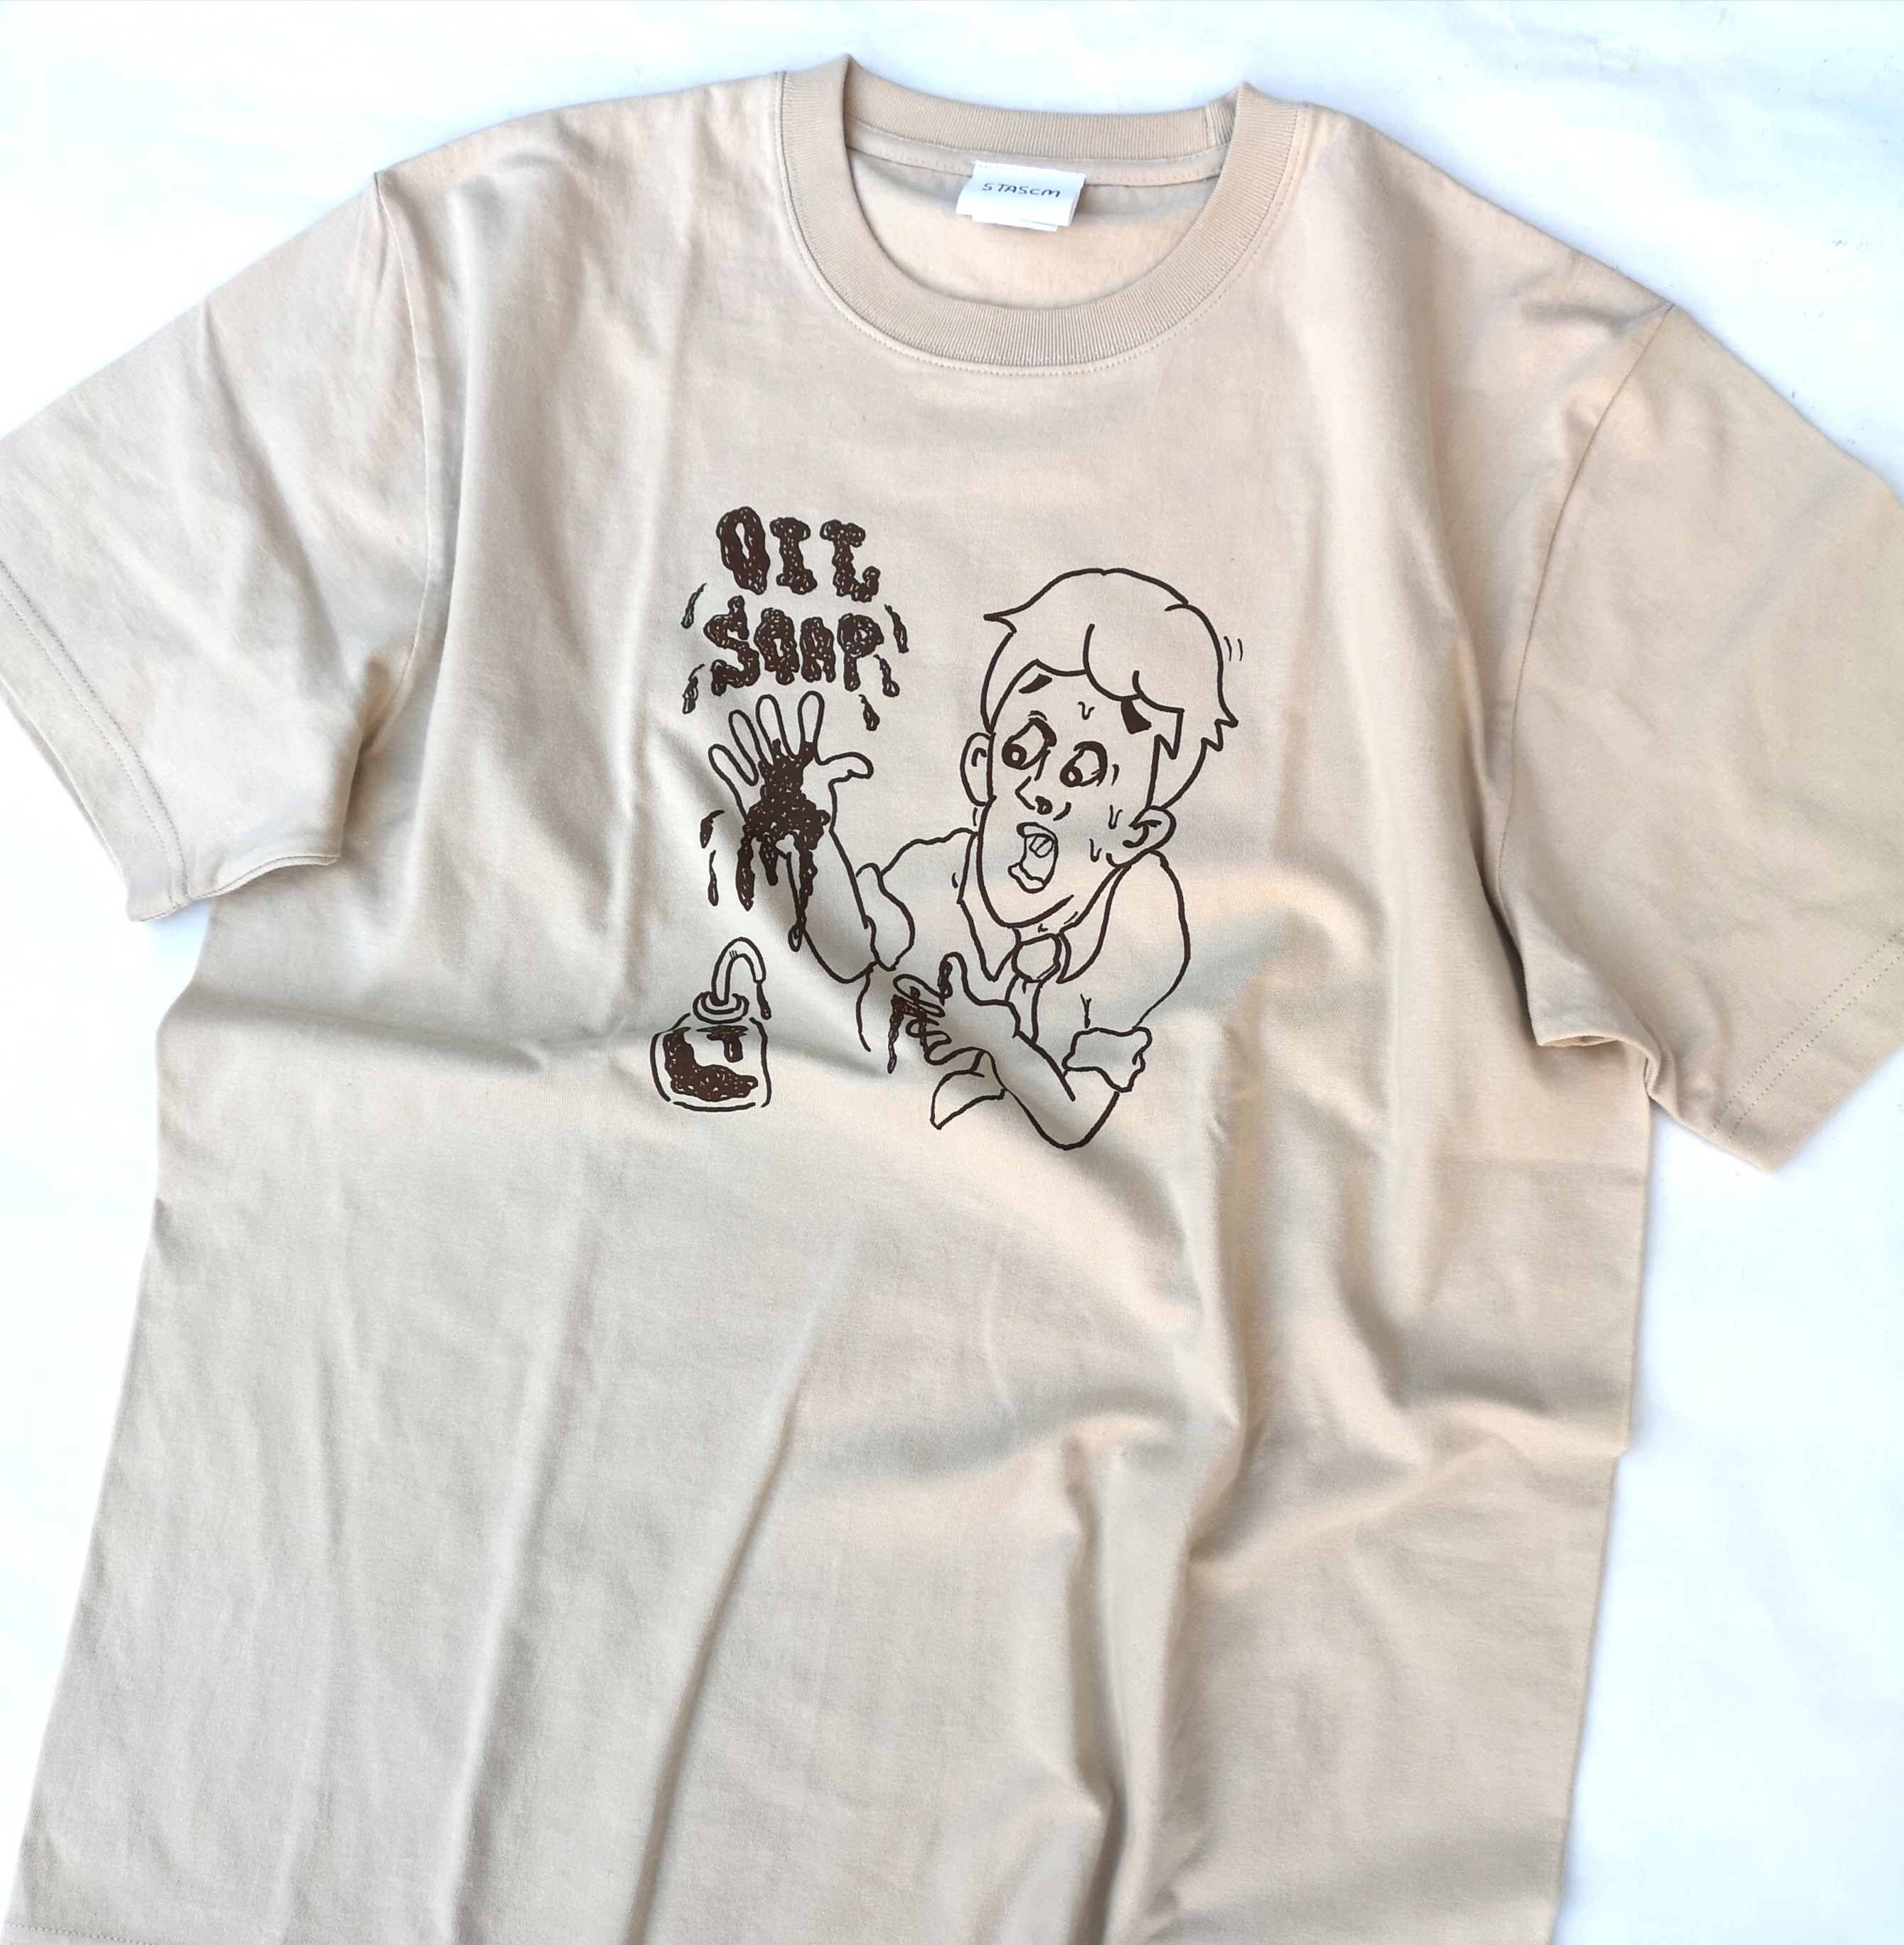 "STASCM  ""おっとっとシリーズ"" OIL SOAP TEE SIZE : L"